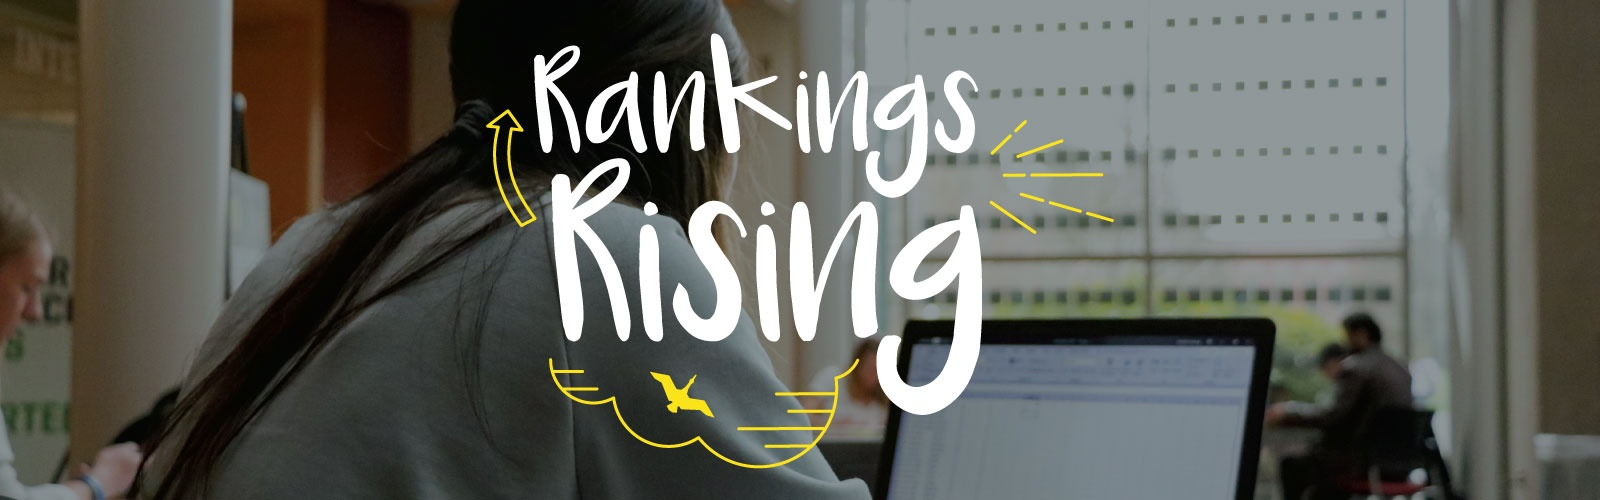 The phrase 'rankings rising' over a photo of a student studying on a laptop